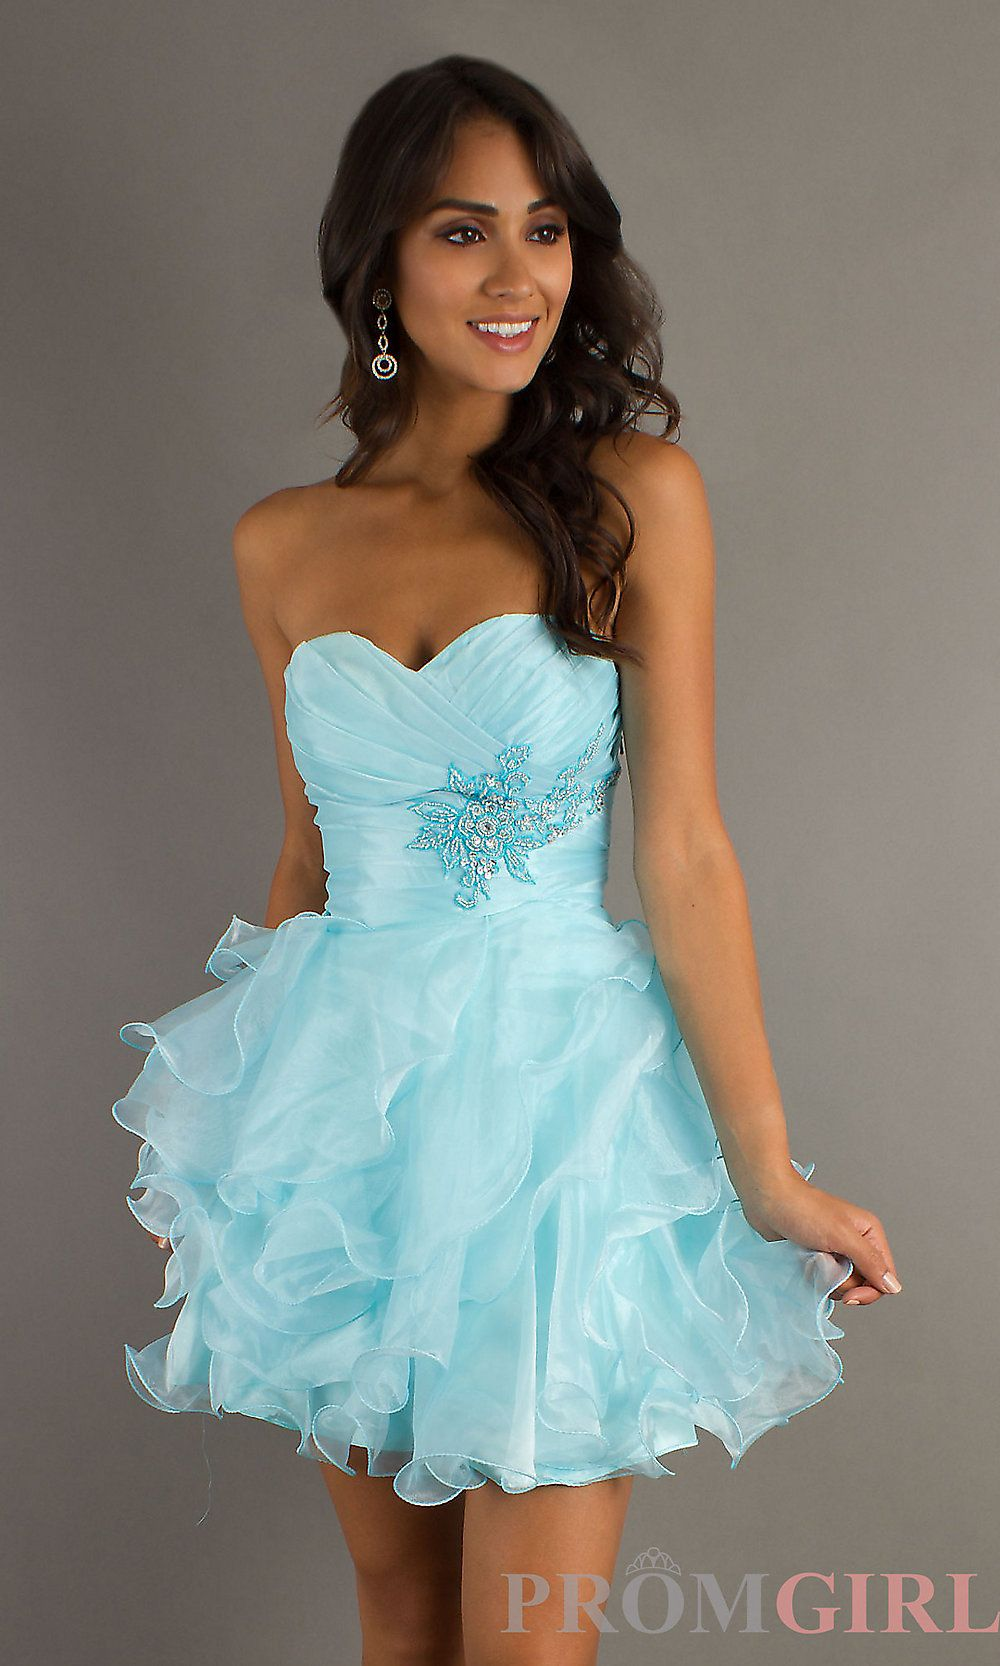 I normally donut like short dresses but this is so cute dresses